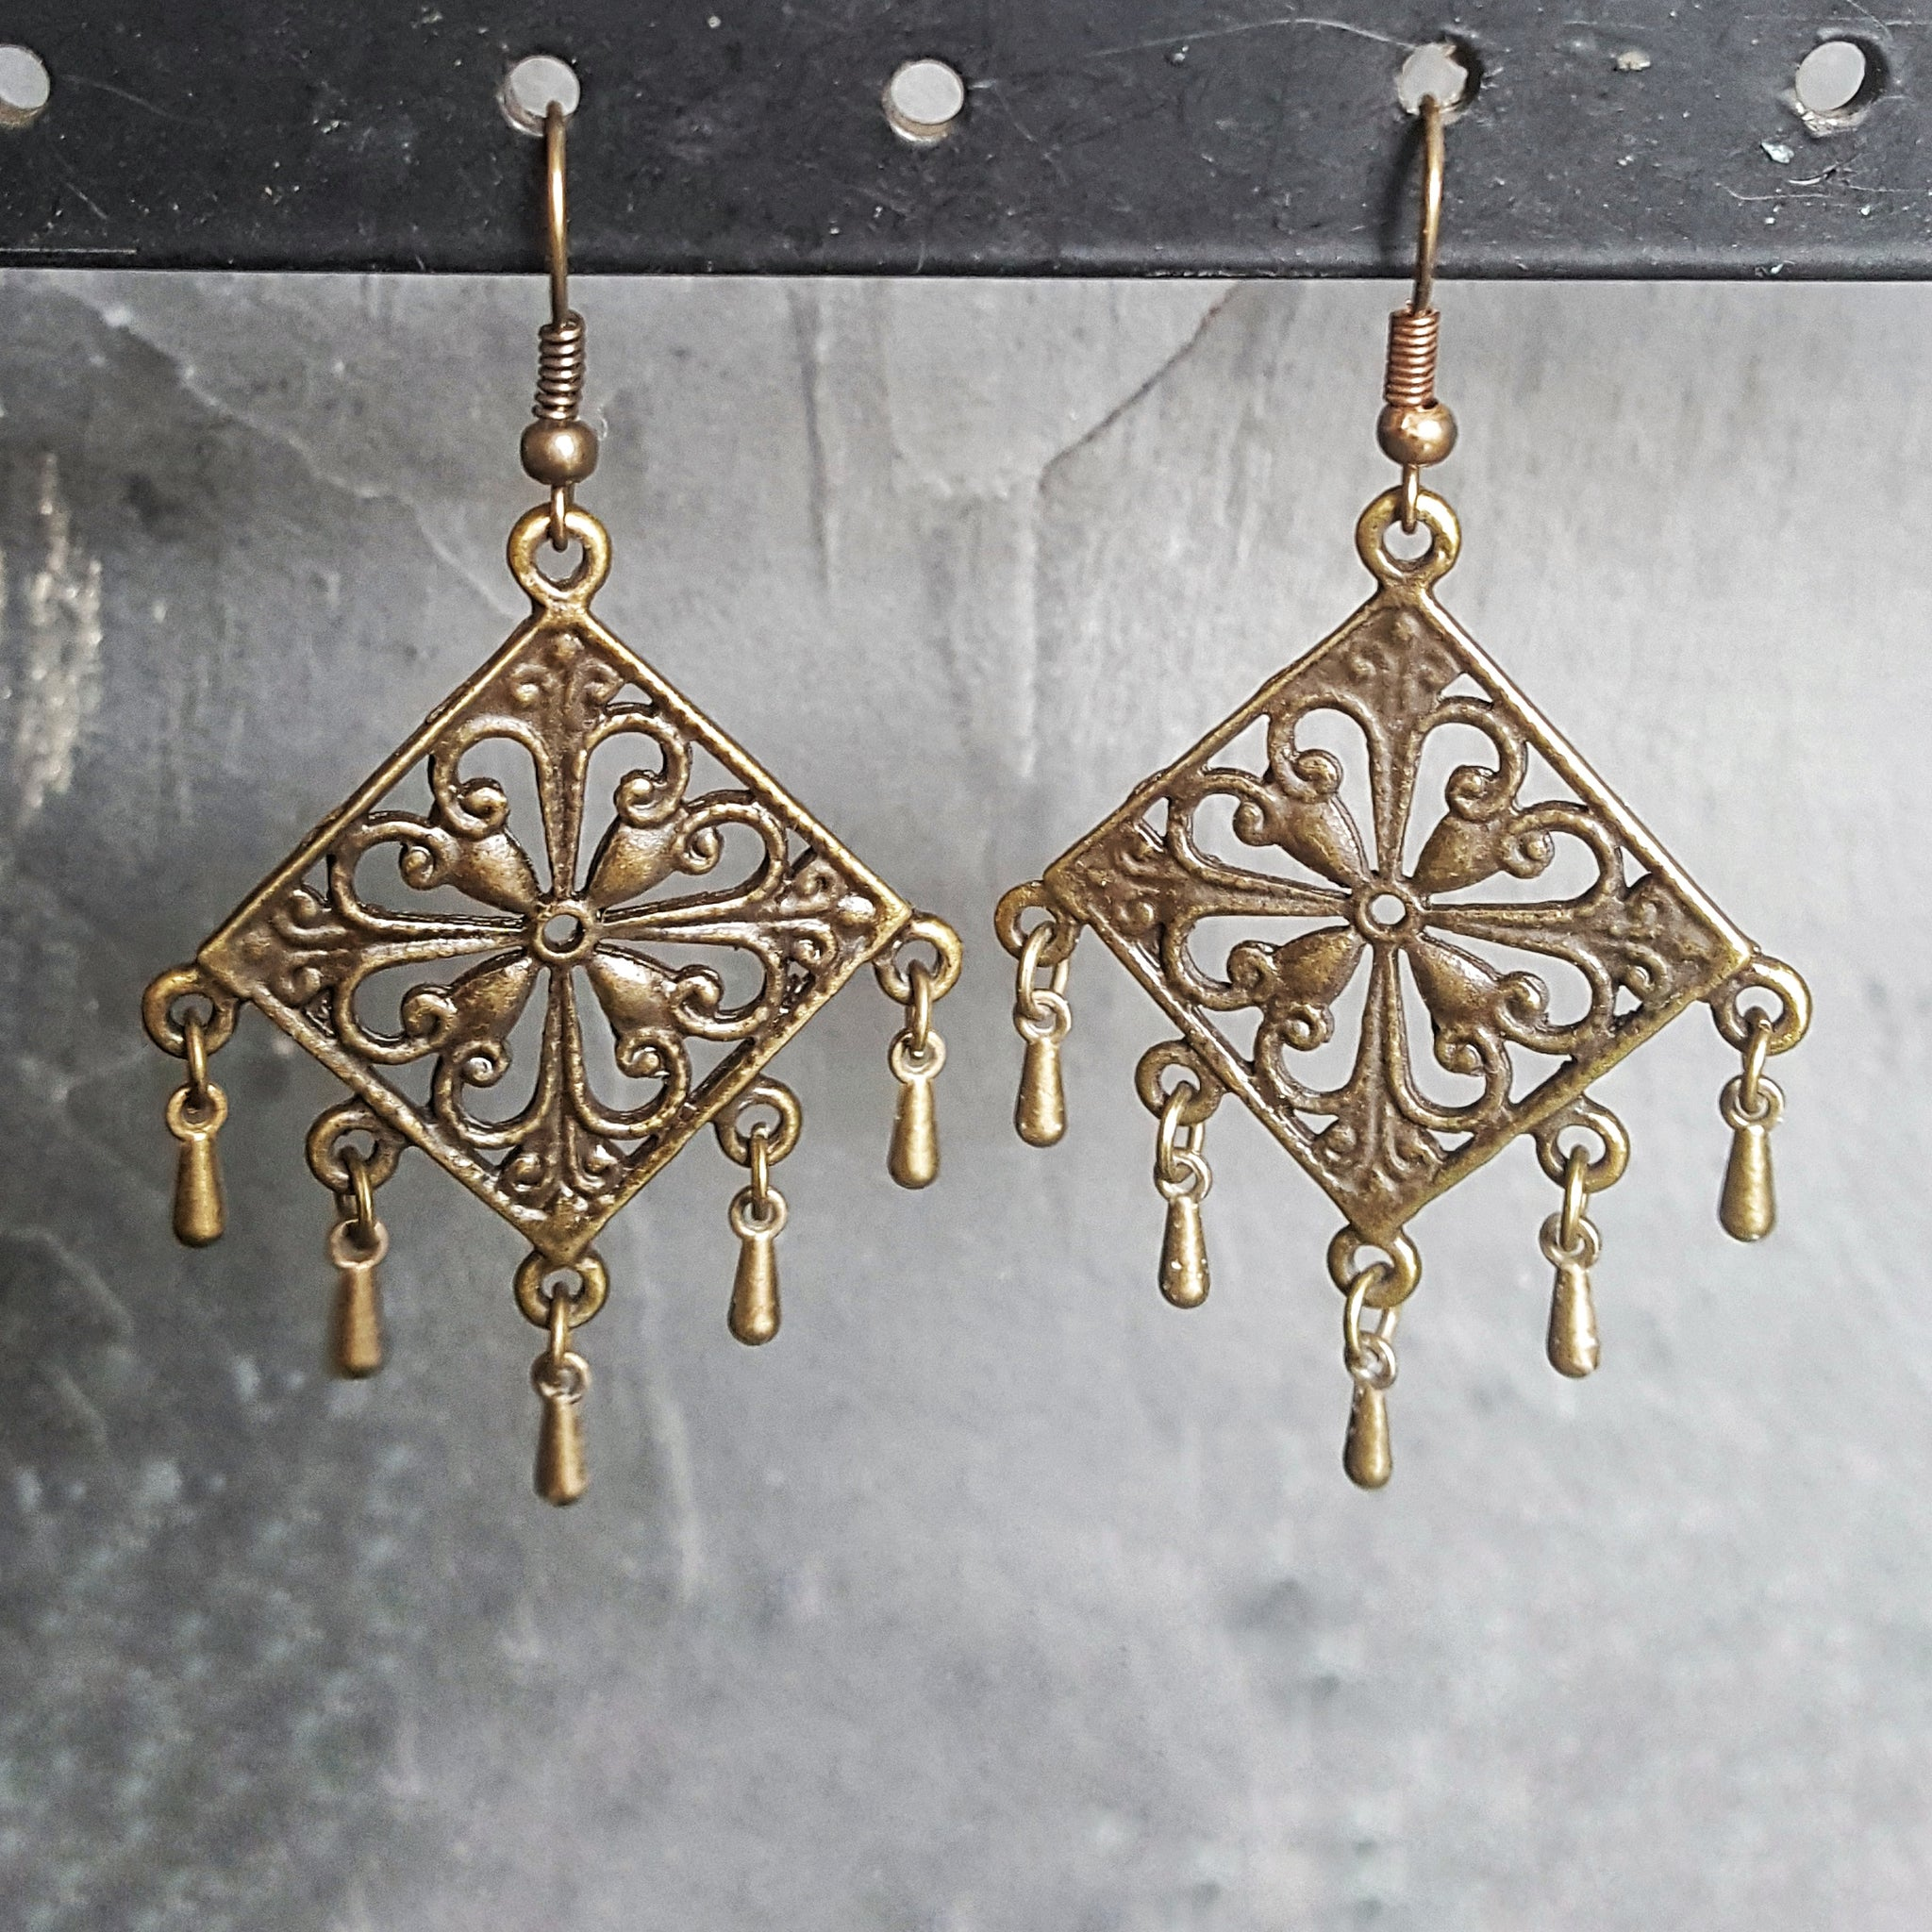 Square Bronze Chandelier Earrings Bohemian Jewelry - DRAVYNMOOR